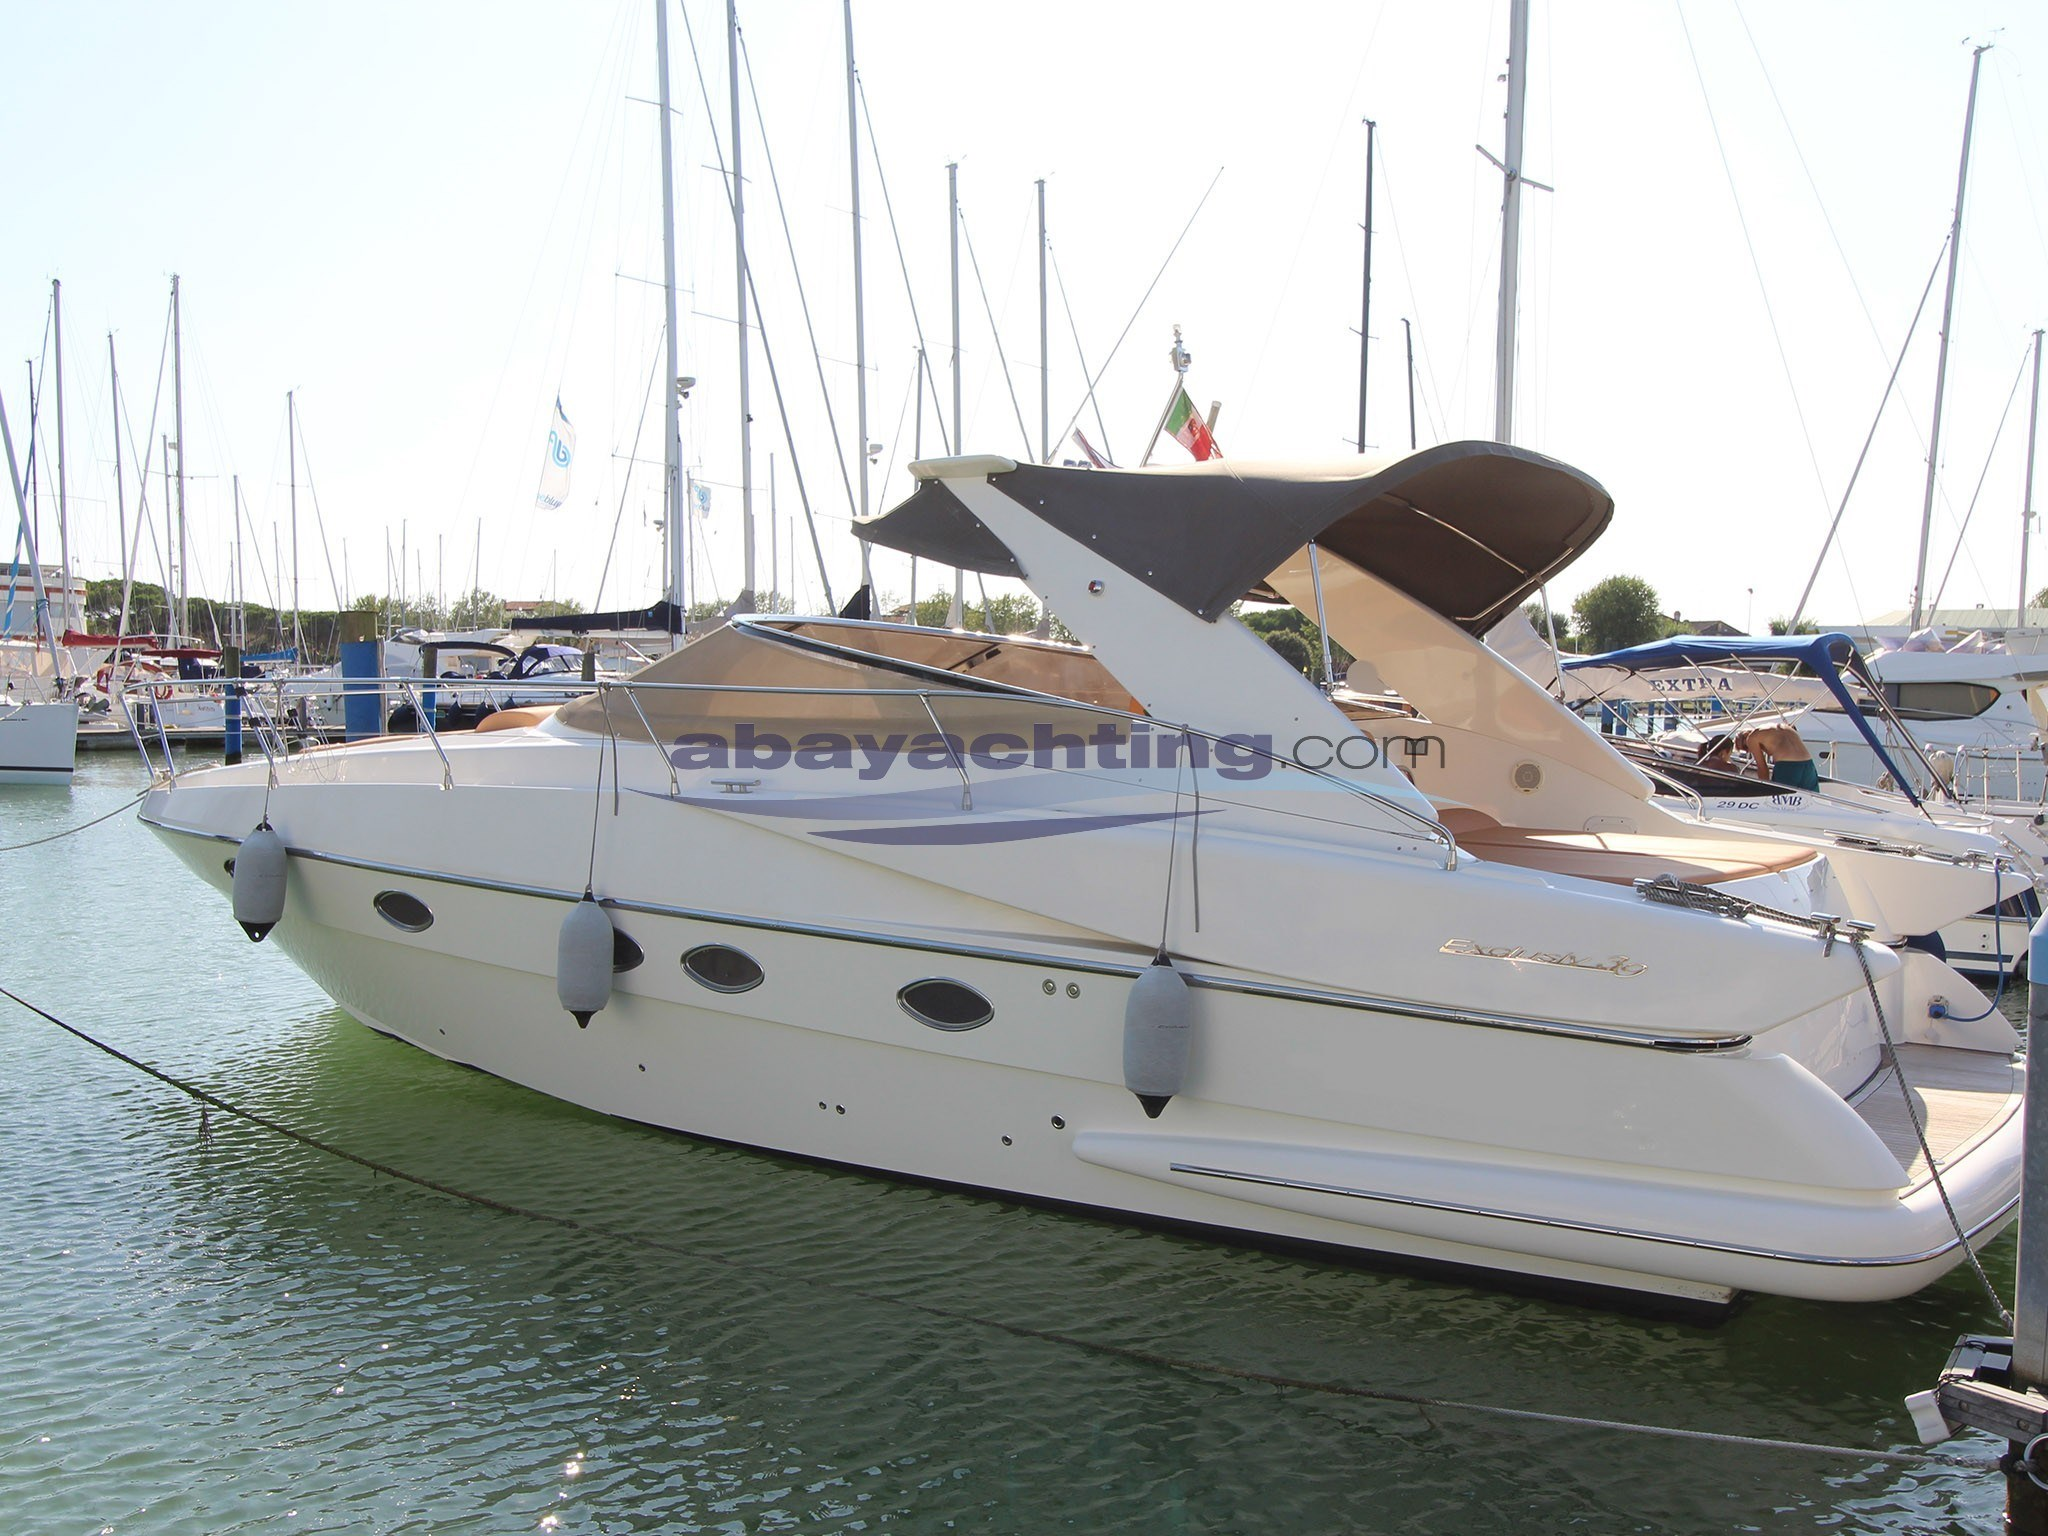 New price for Marine International Exclusiv 39